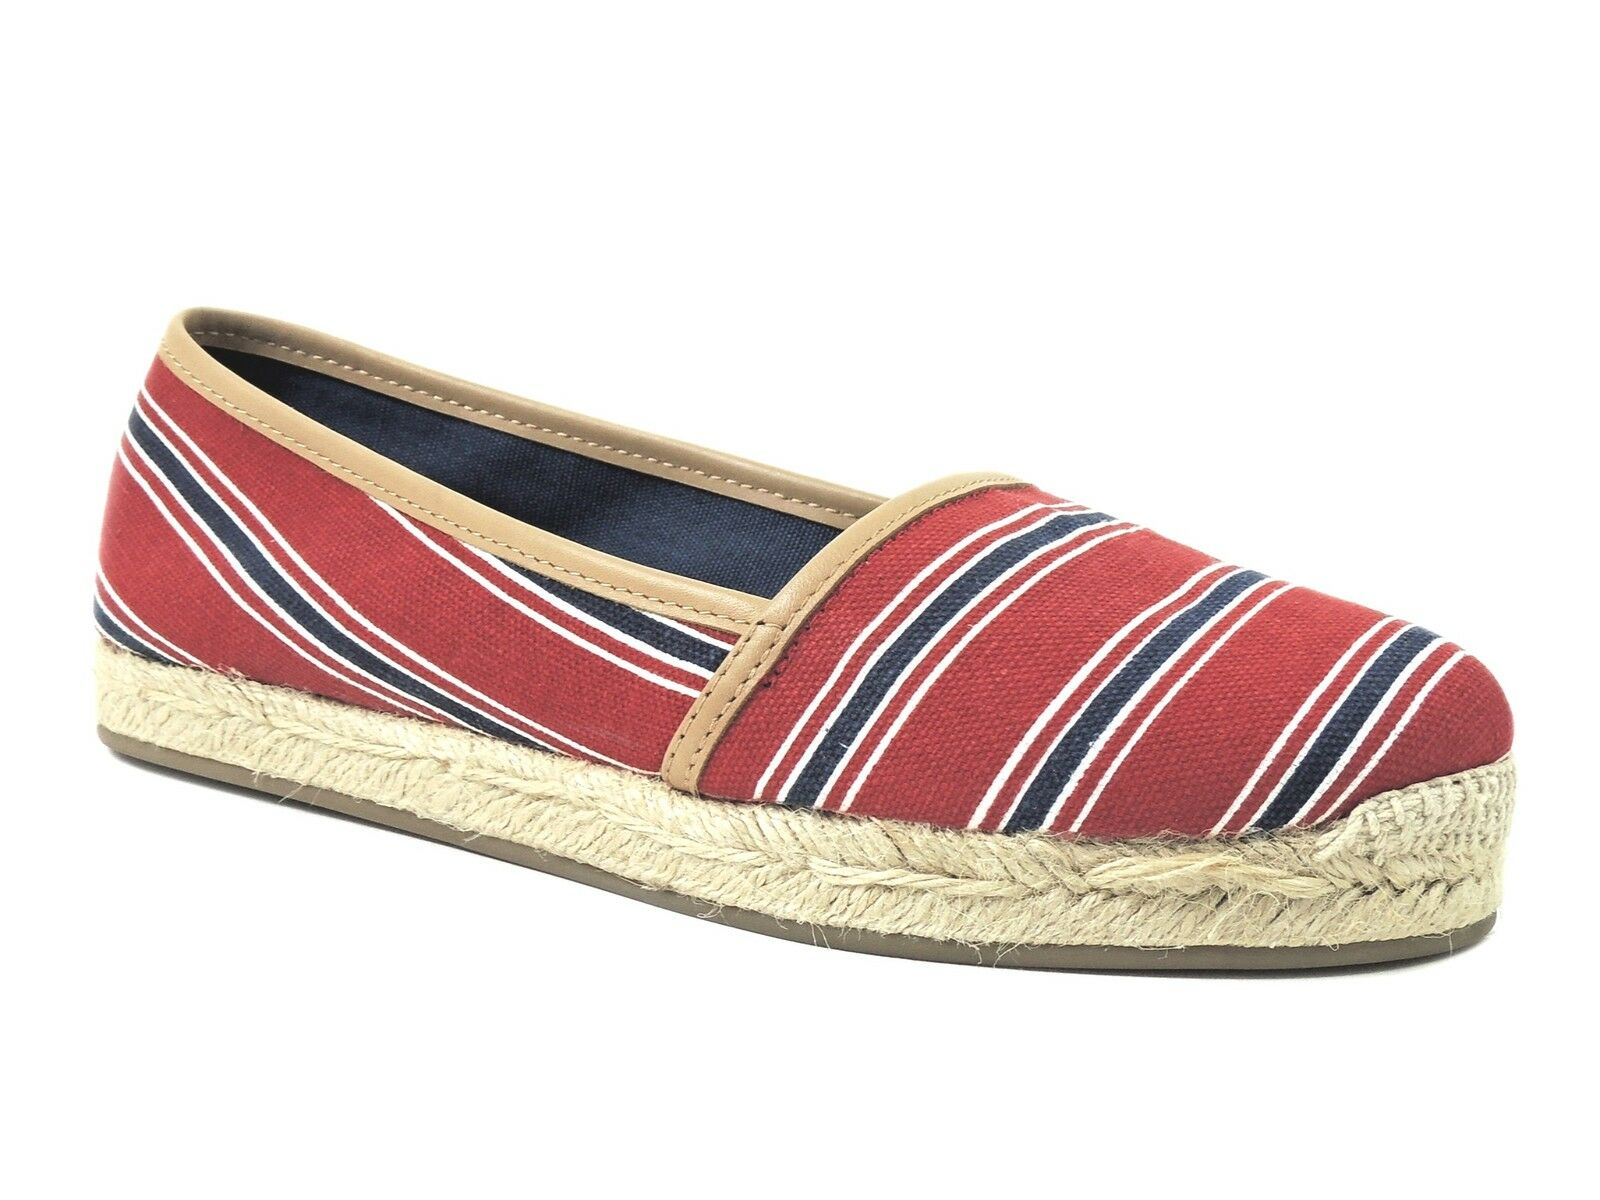 Aqua Women's Tropical Espadrille Loafers Loafers Loafers Red Navy bluee Multi Canvas Size 10 M 78f039